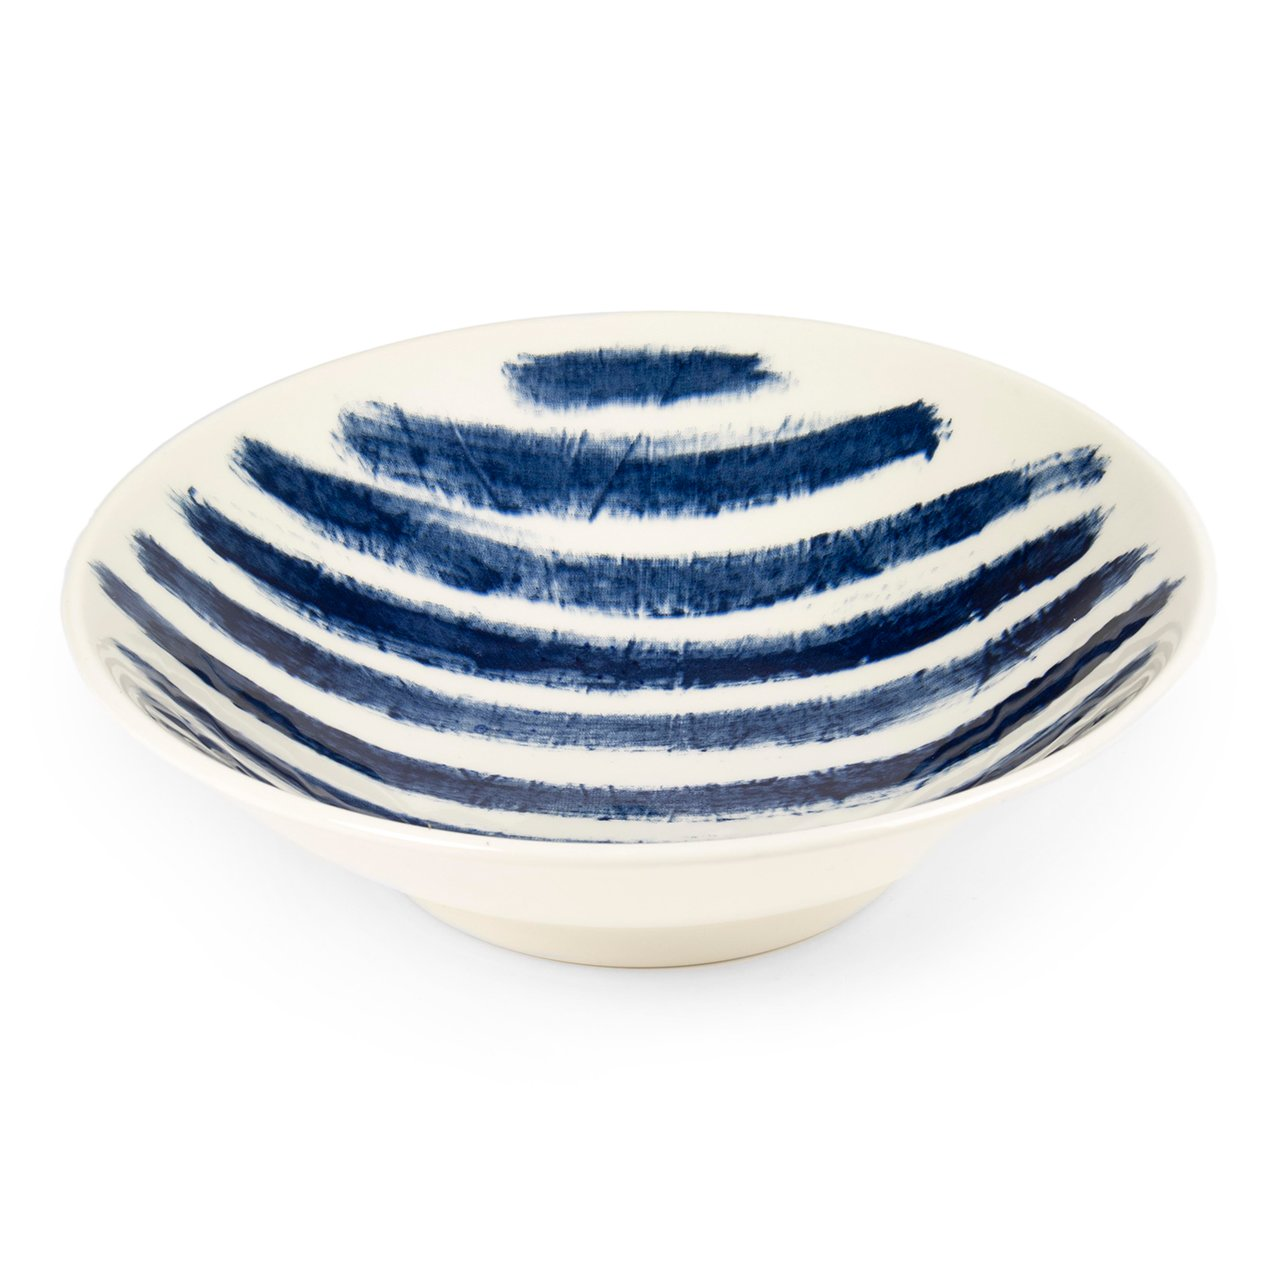 Faye Toogood Indigo Rain Medium Serving Bowl